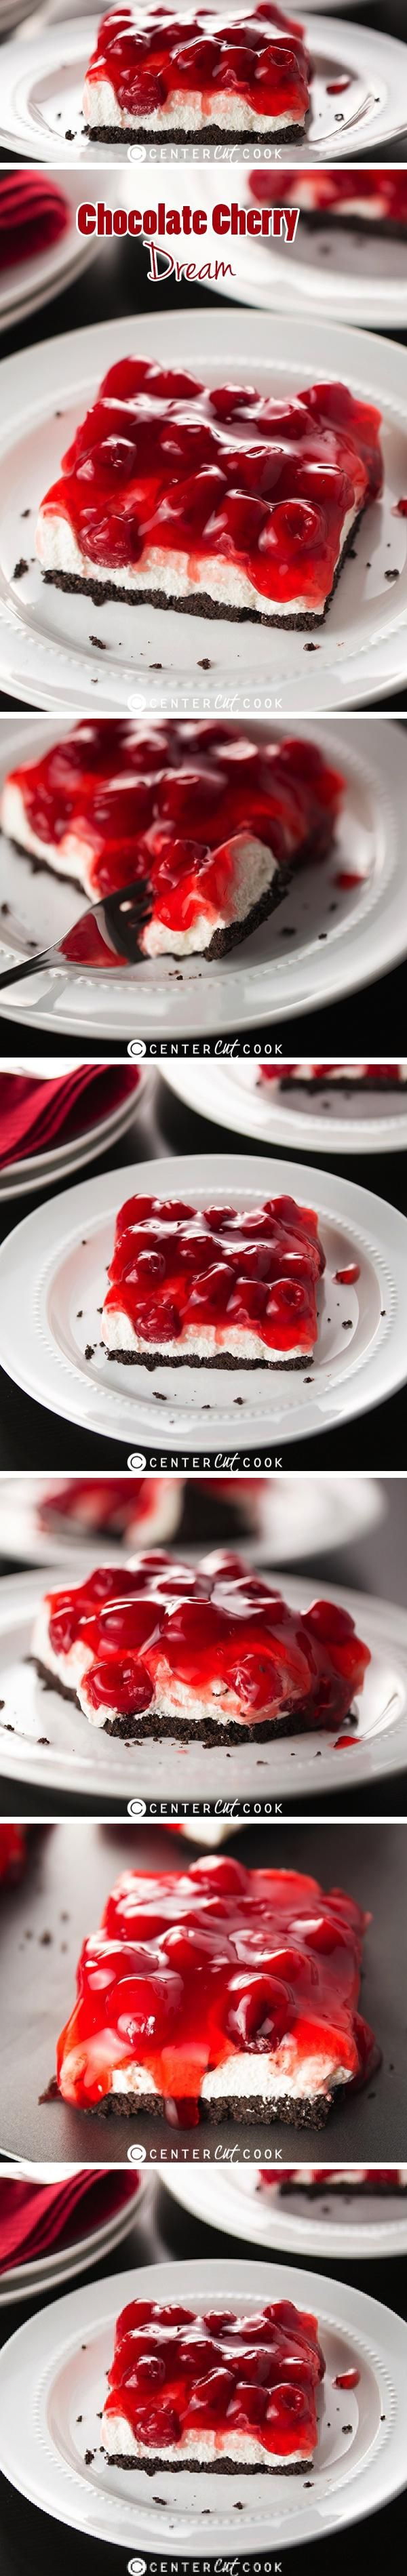 Chocolate Cherry Dream -- the perfect layered no-bake dessert that's easy to make and tastes like a dream! An Oreo cookie crust gets topped with a fluffy cream cheese layer before cherry pie filling is added to complete it all. It's a dessert everyone will love!